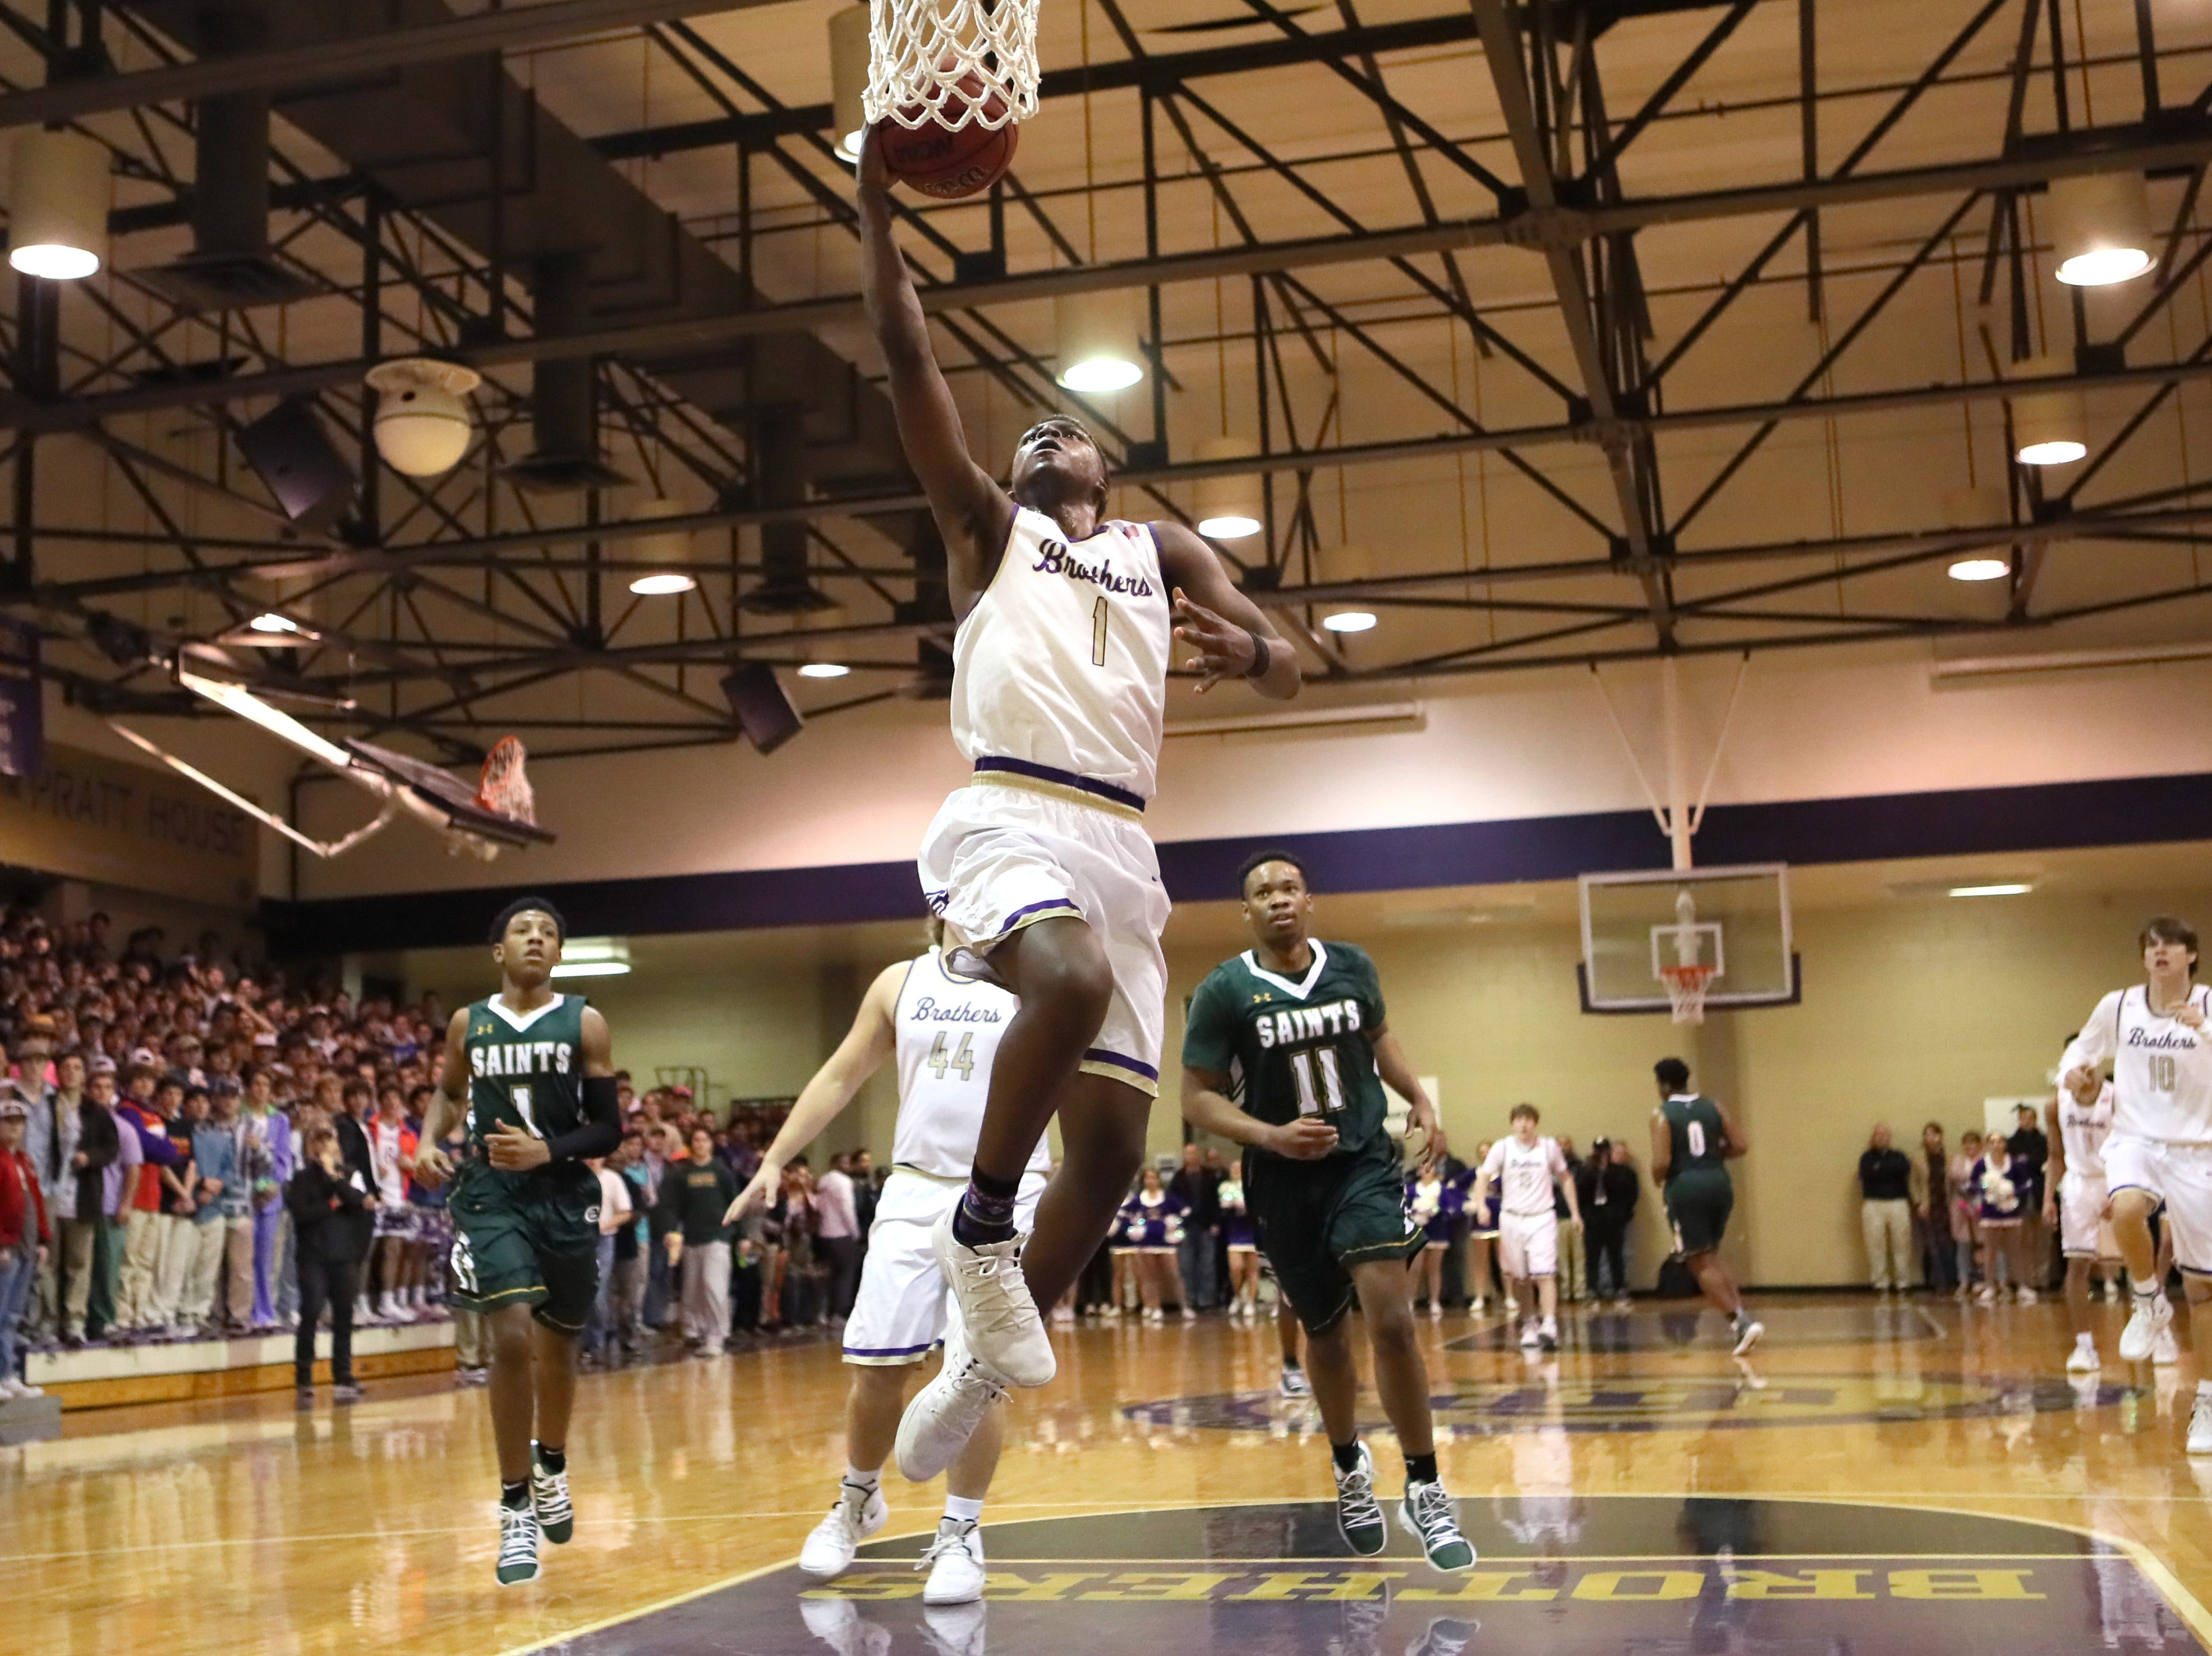 Christian Brothers' Chandler Jackson lays the ball up against Briarcrest during their game at Christian Brothers High School on Friday, Jan. 11, 2019.